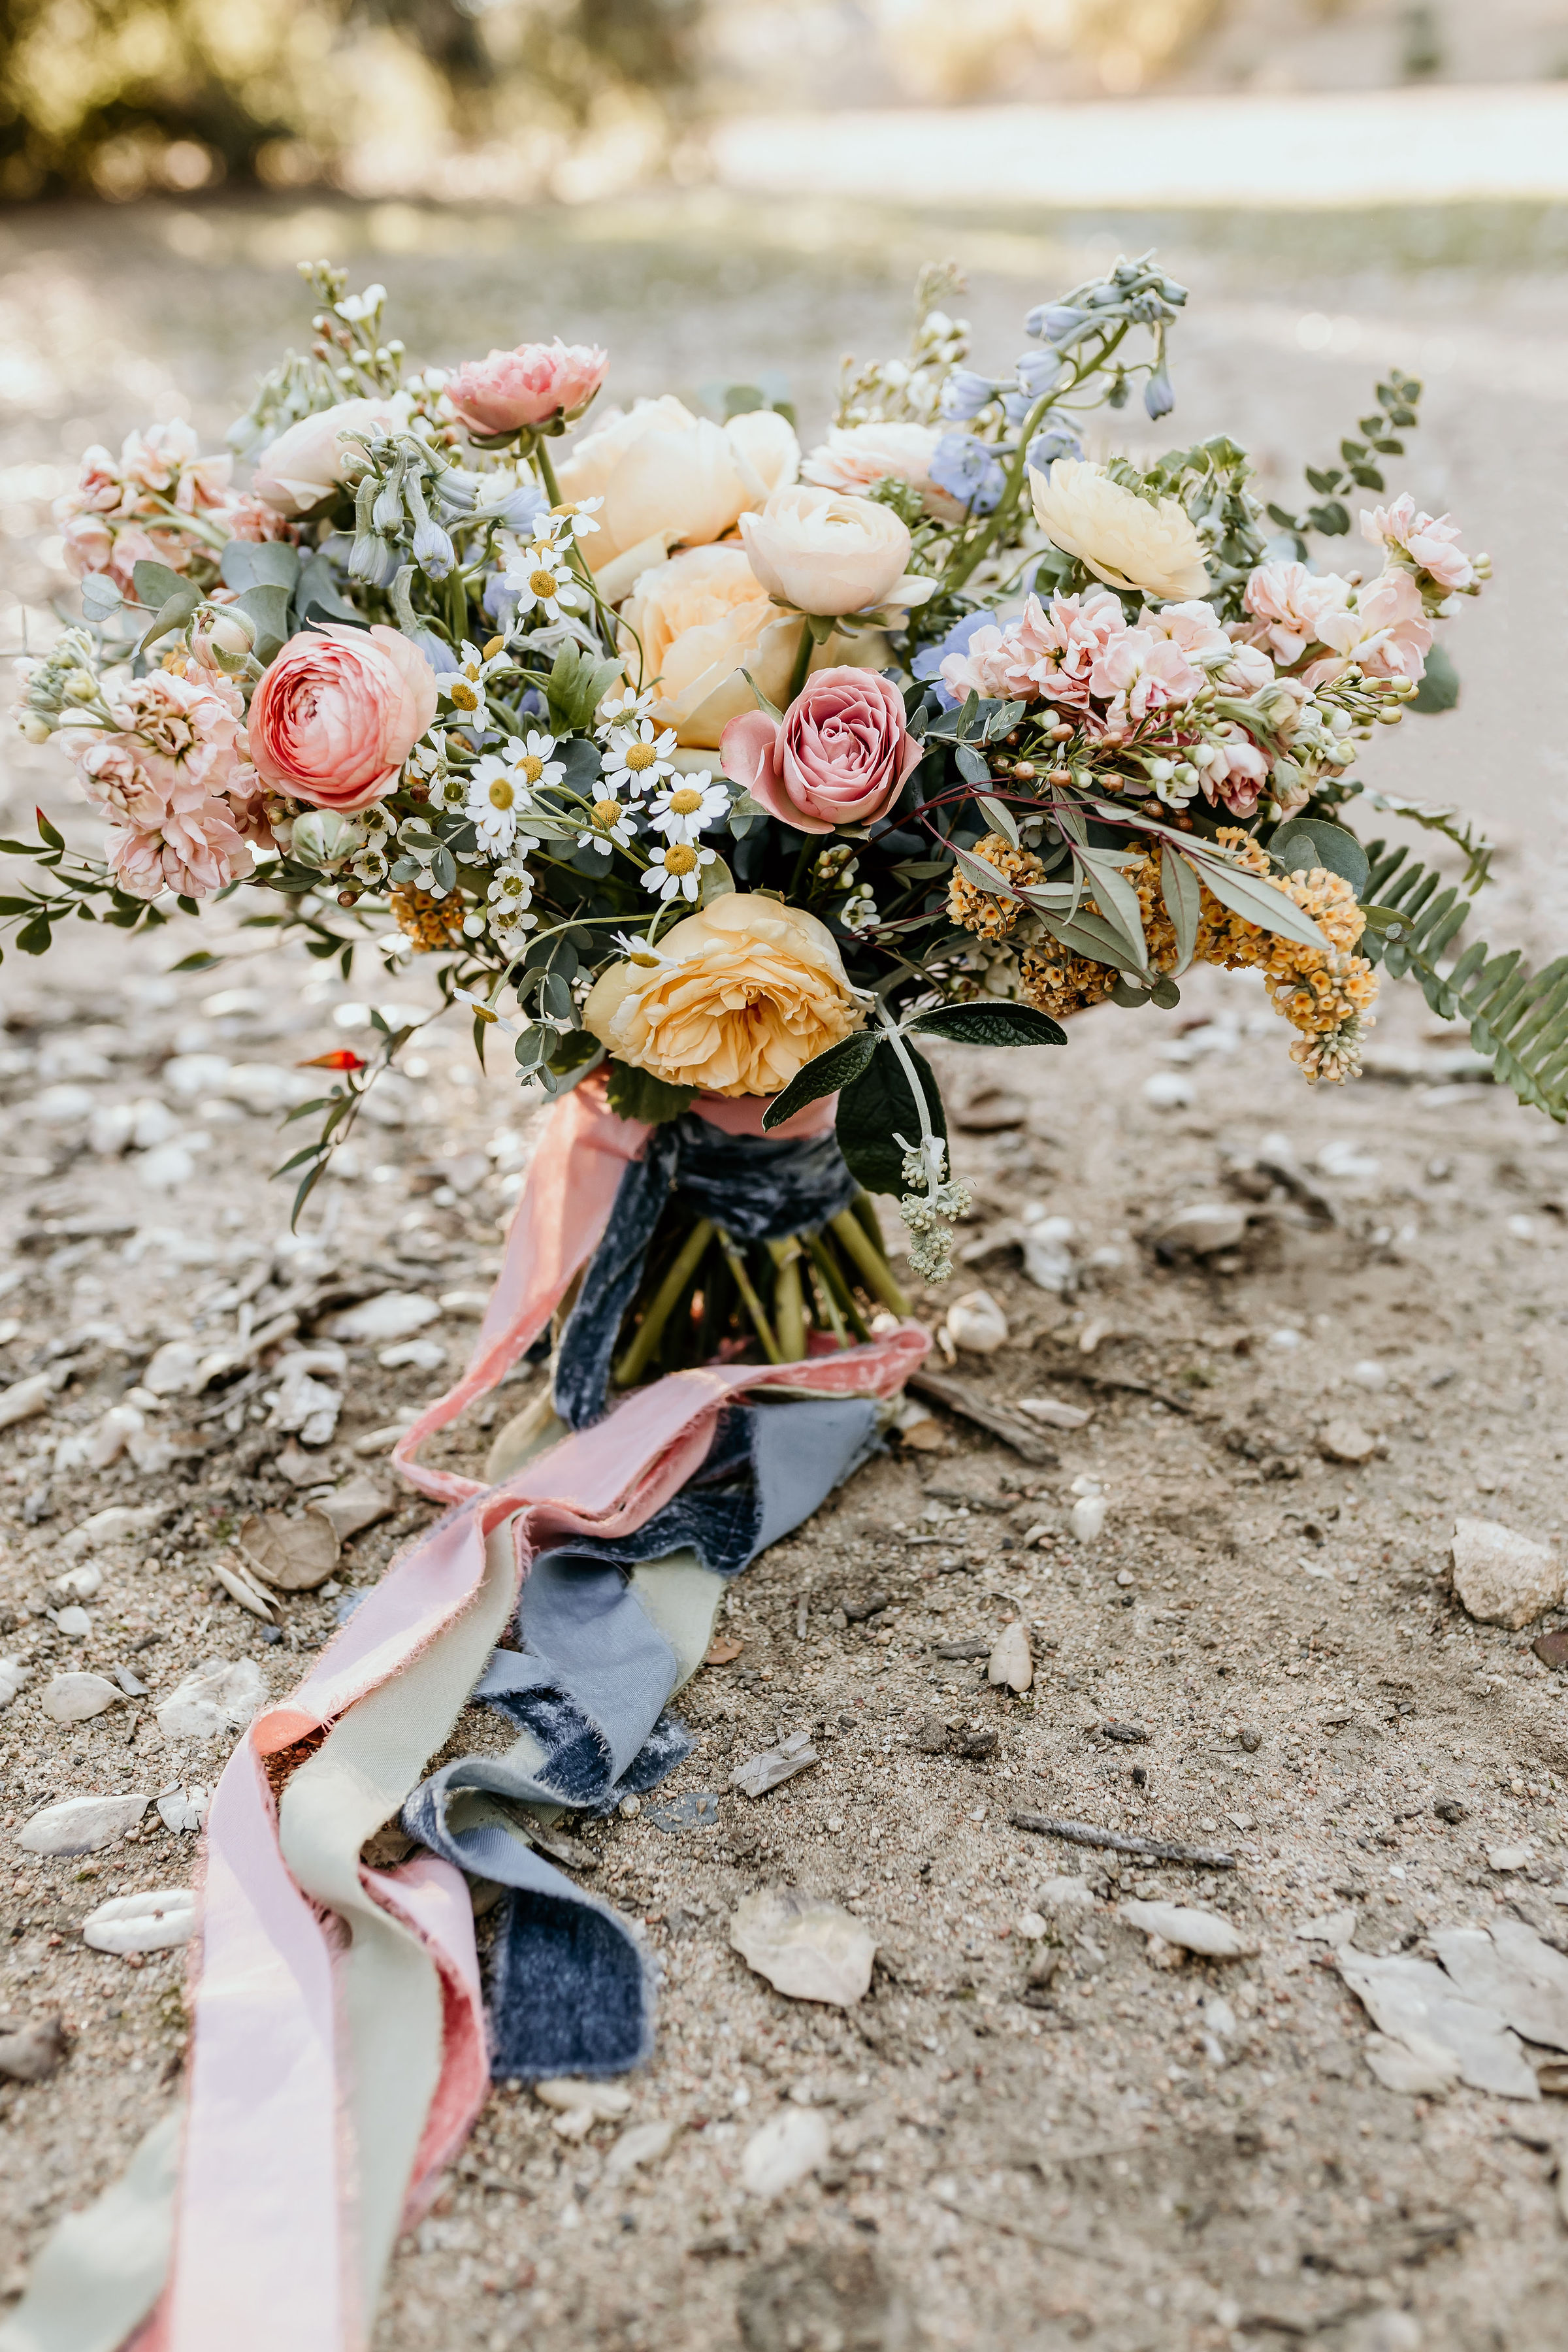 Vintage pink and pastel floral bridal bouquet used at the Alice in Wonderland styled shoot at Chateau Adare in Murrieta.